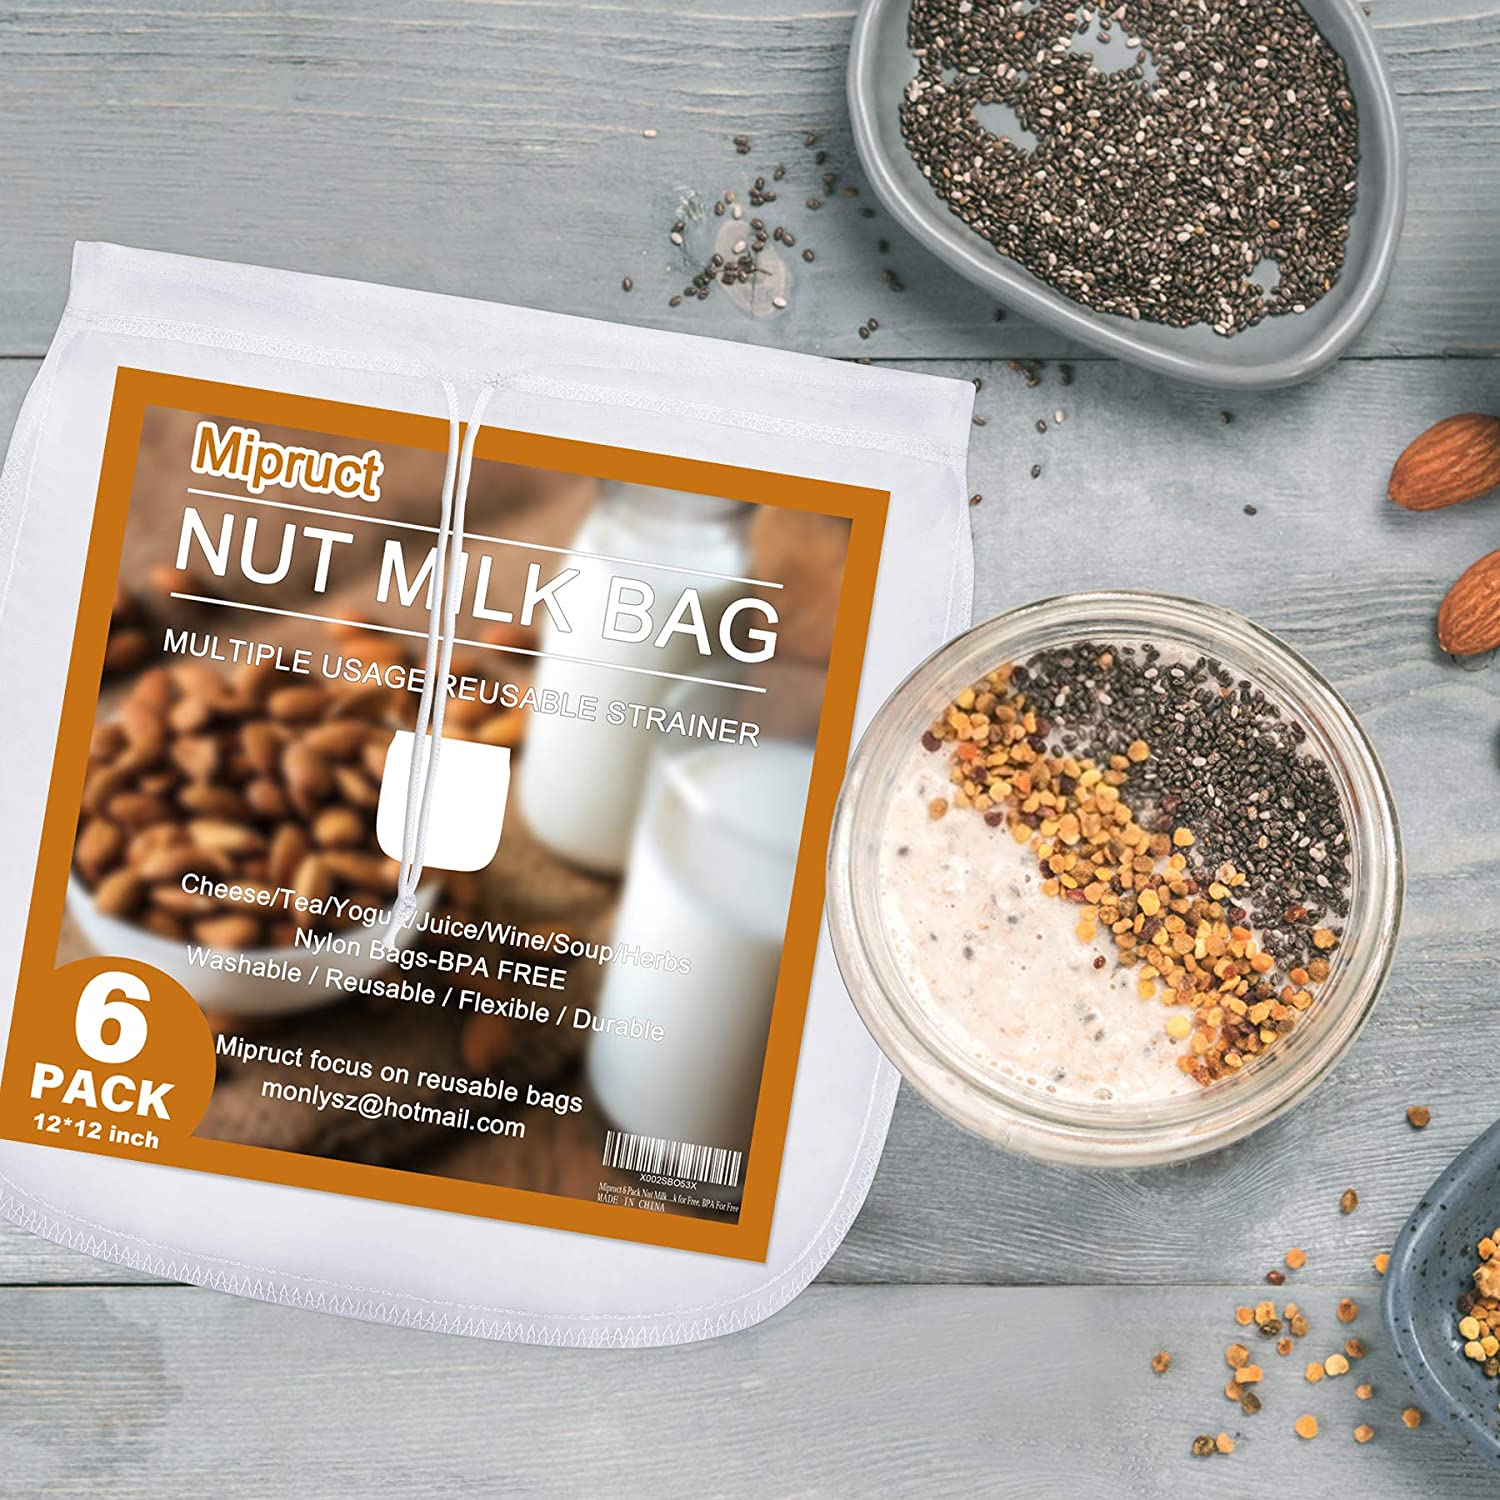 Mipruct 6 Pack Nut Milk Bag for straining reusable,12''×12'' Nut Bag for straining, Nylon strainer bag with heavy-duty Hook for Free, BPA For Free